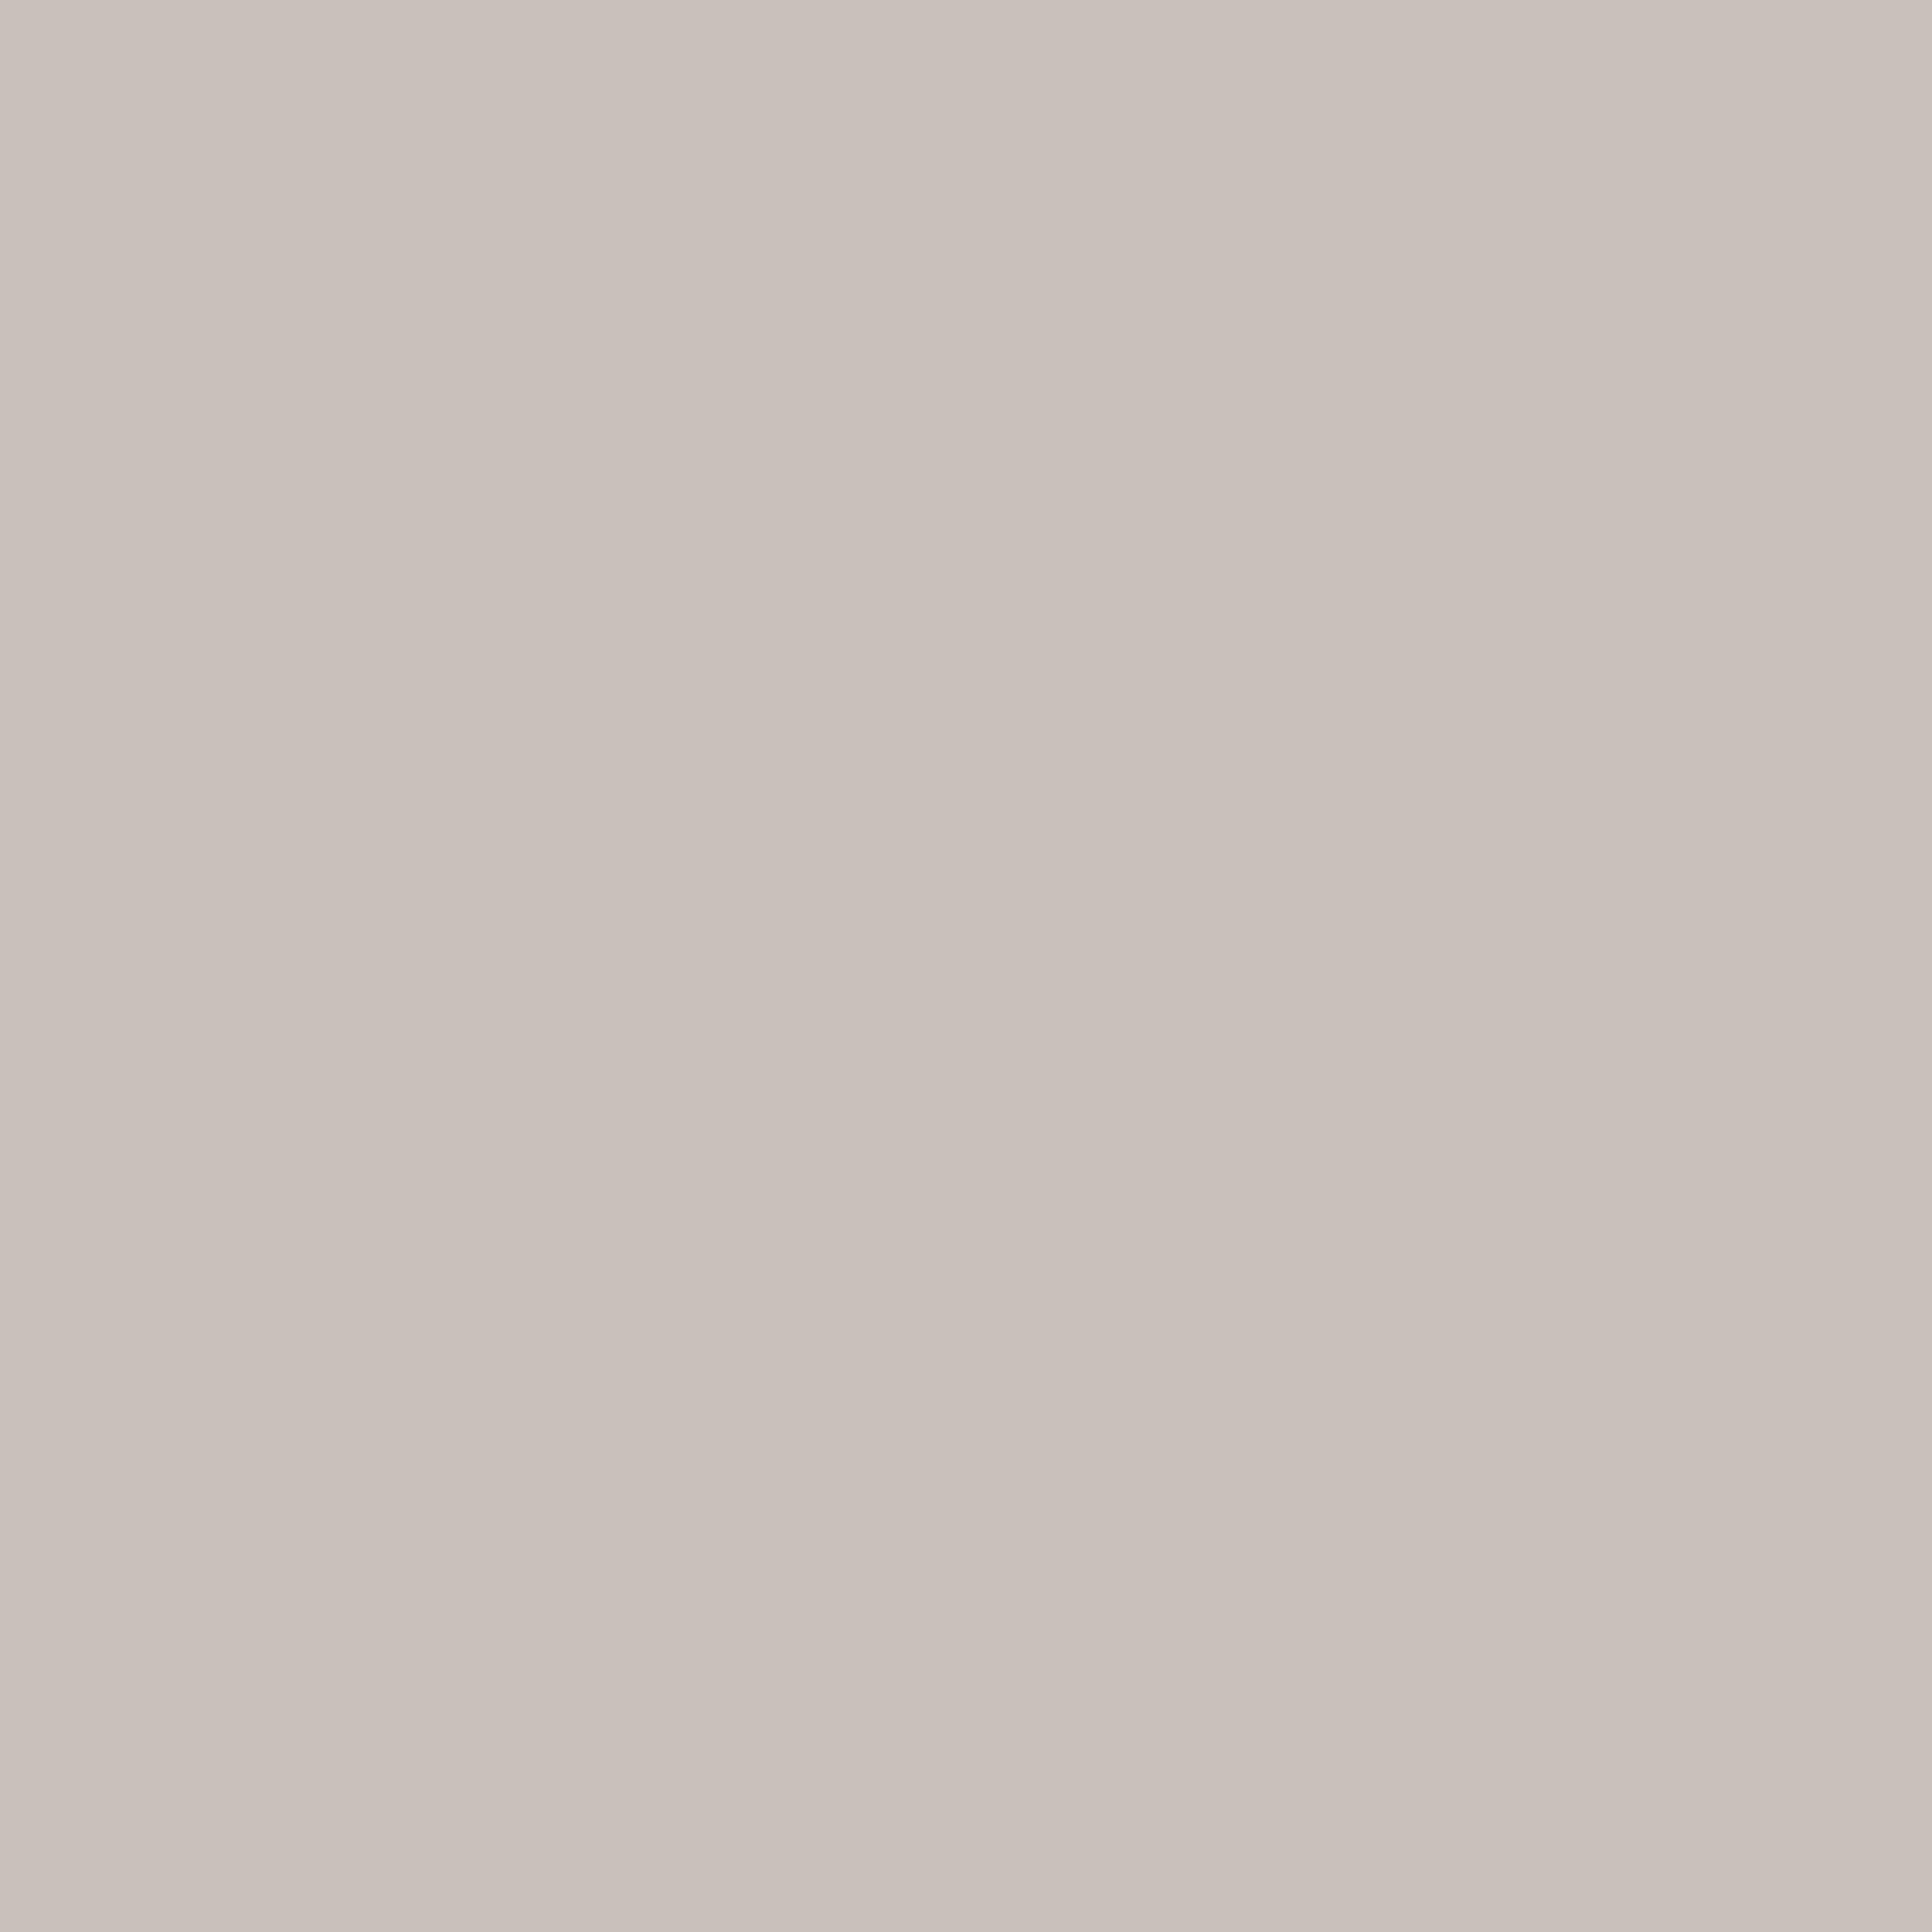 2048x2048 Pale Silver Solid Color Background